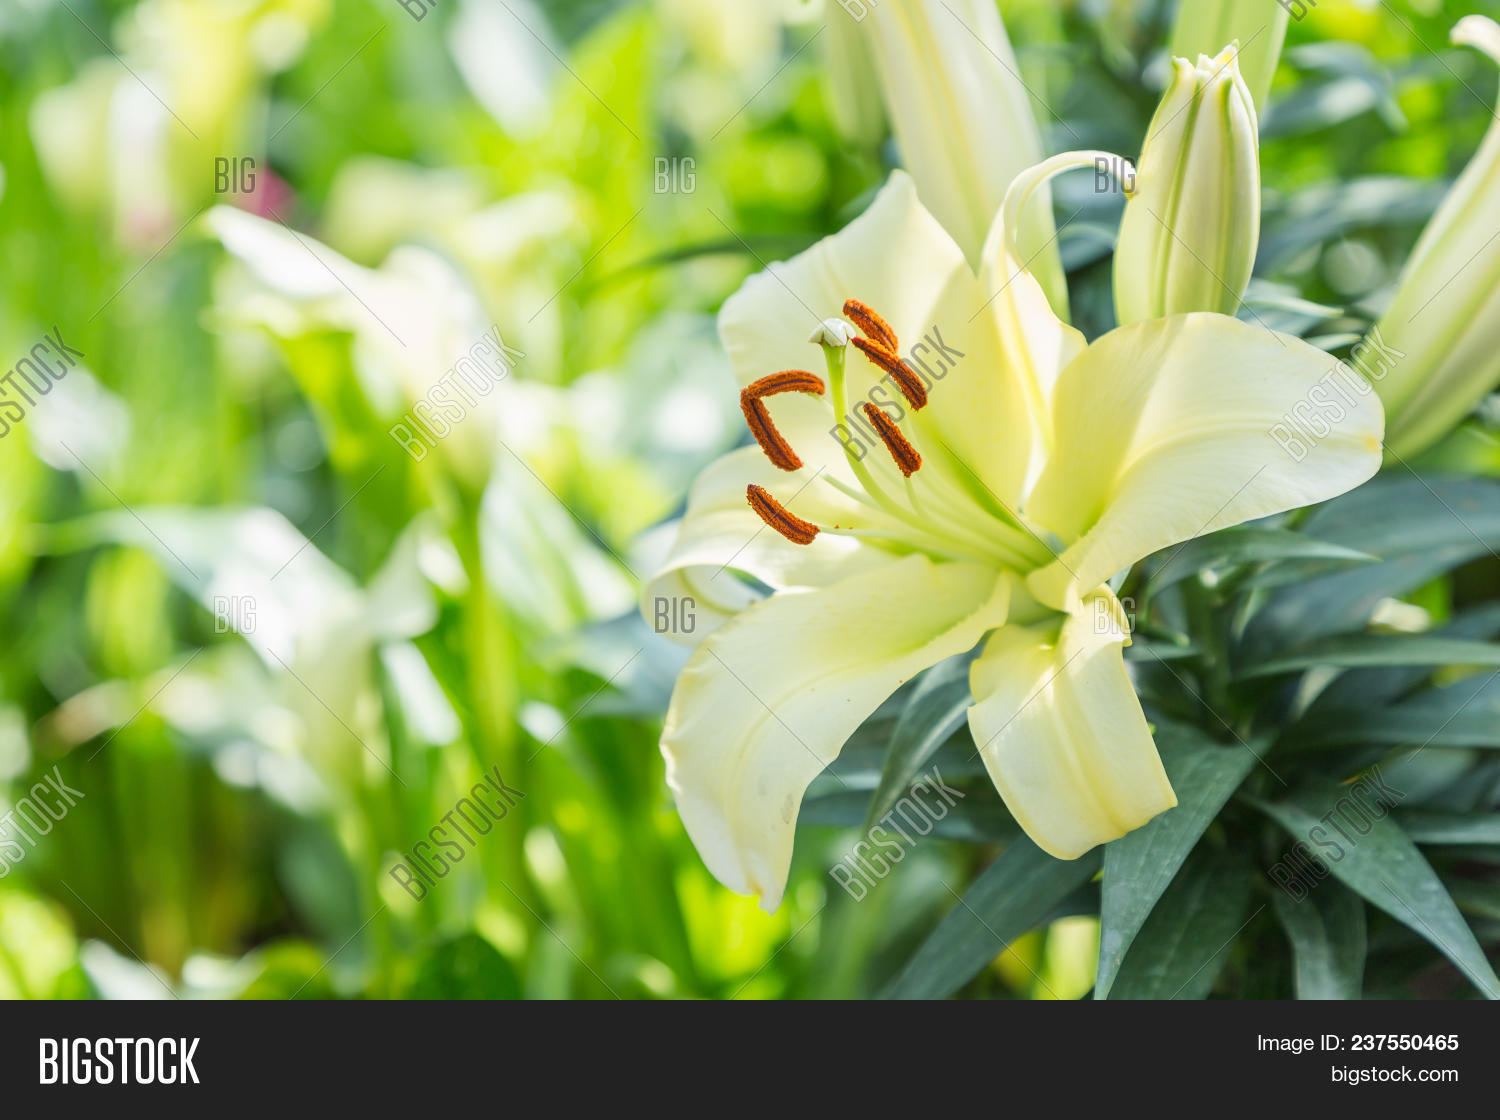 Yellow Lily Flower Image Photo Free Trial Bigstock